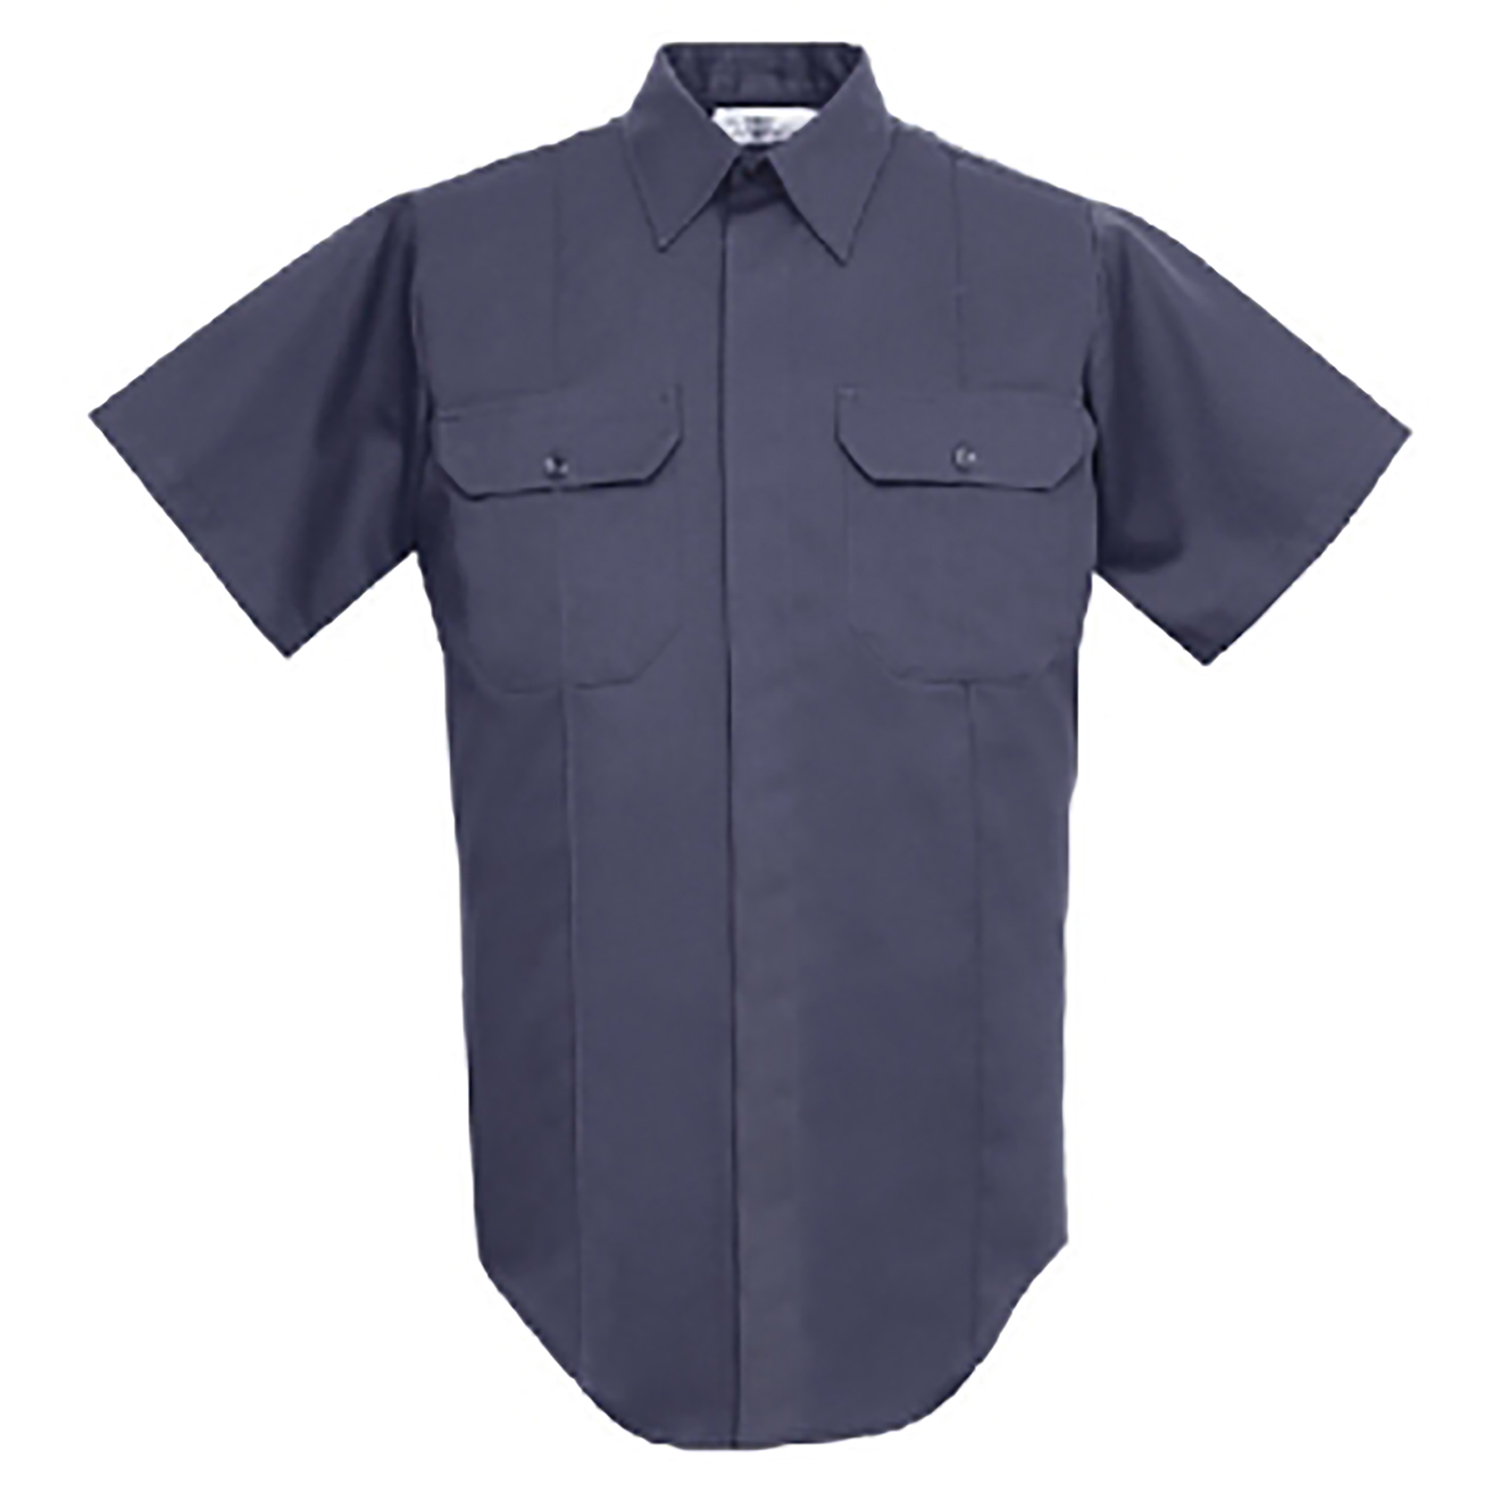 Conqueror Mens Polyester and Cotton Twill Short Sleeve Shirt